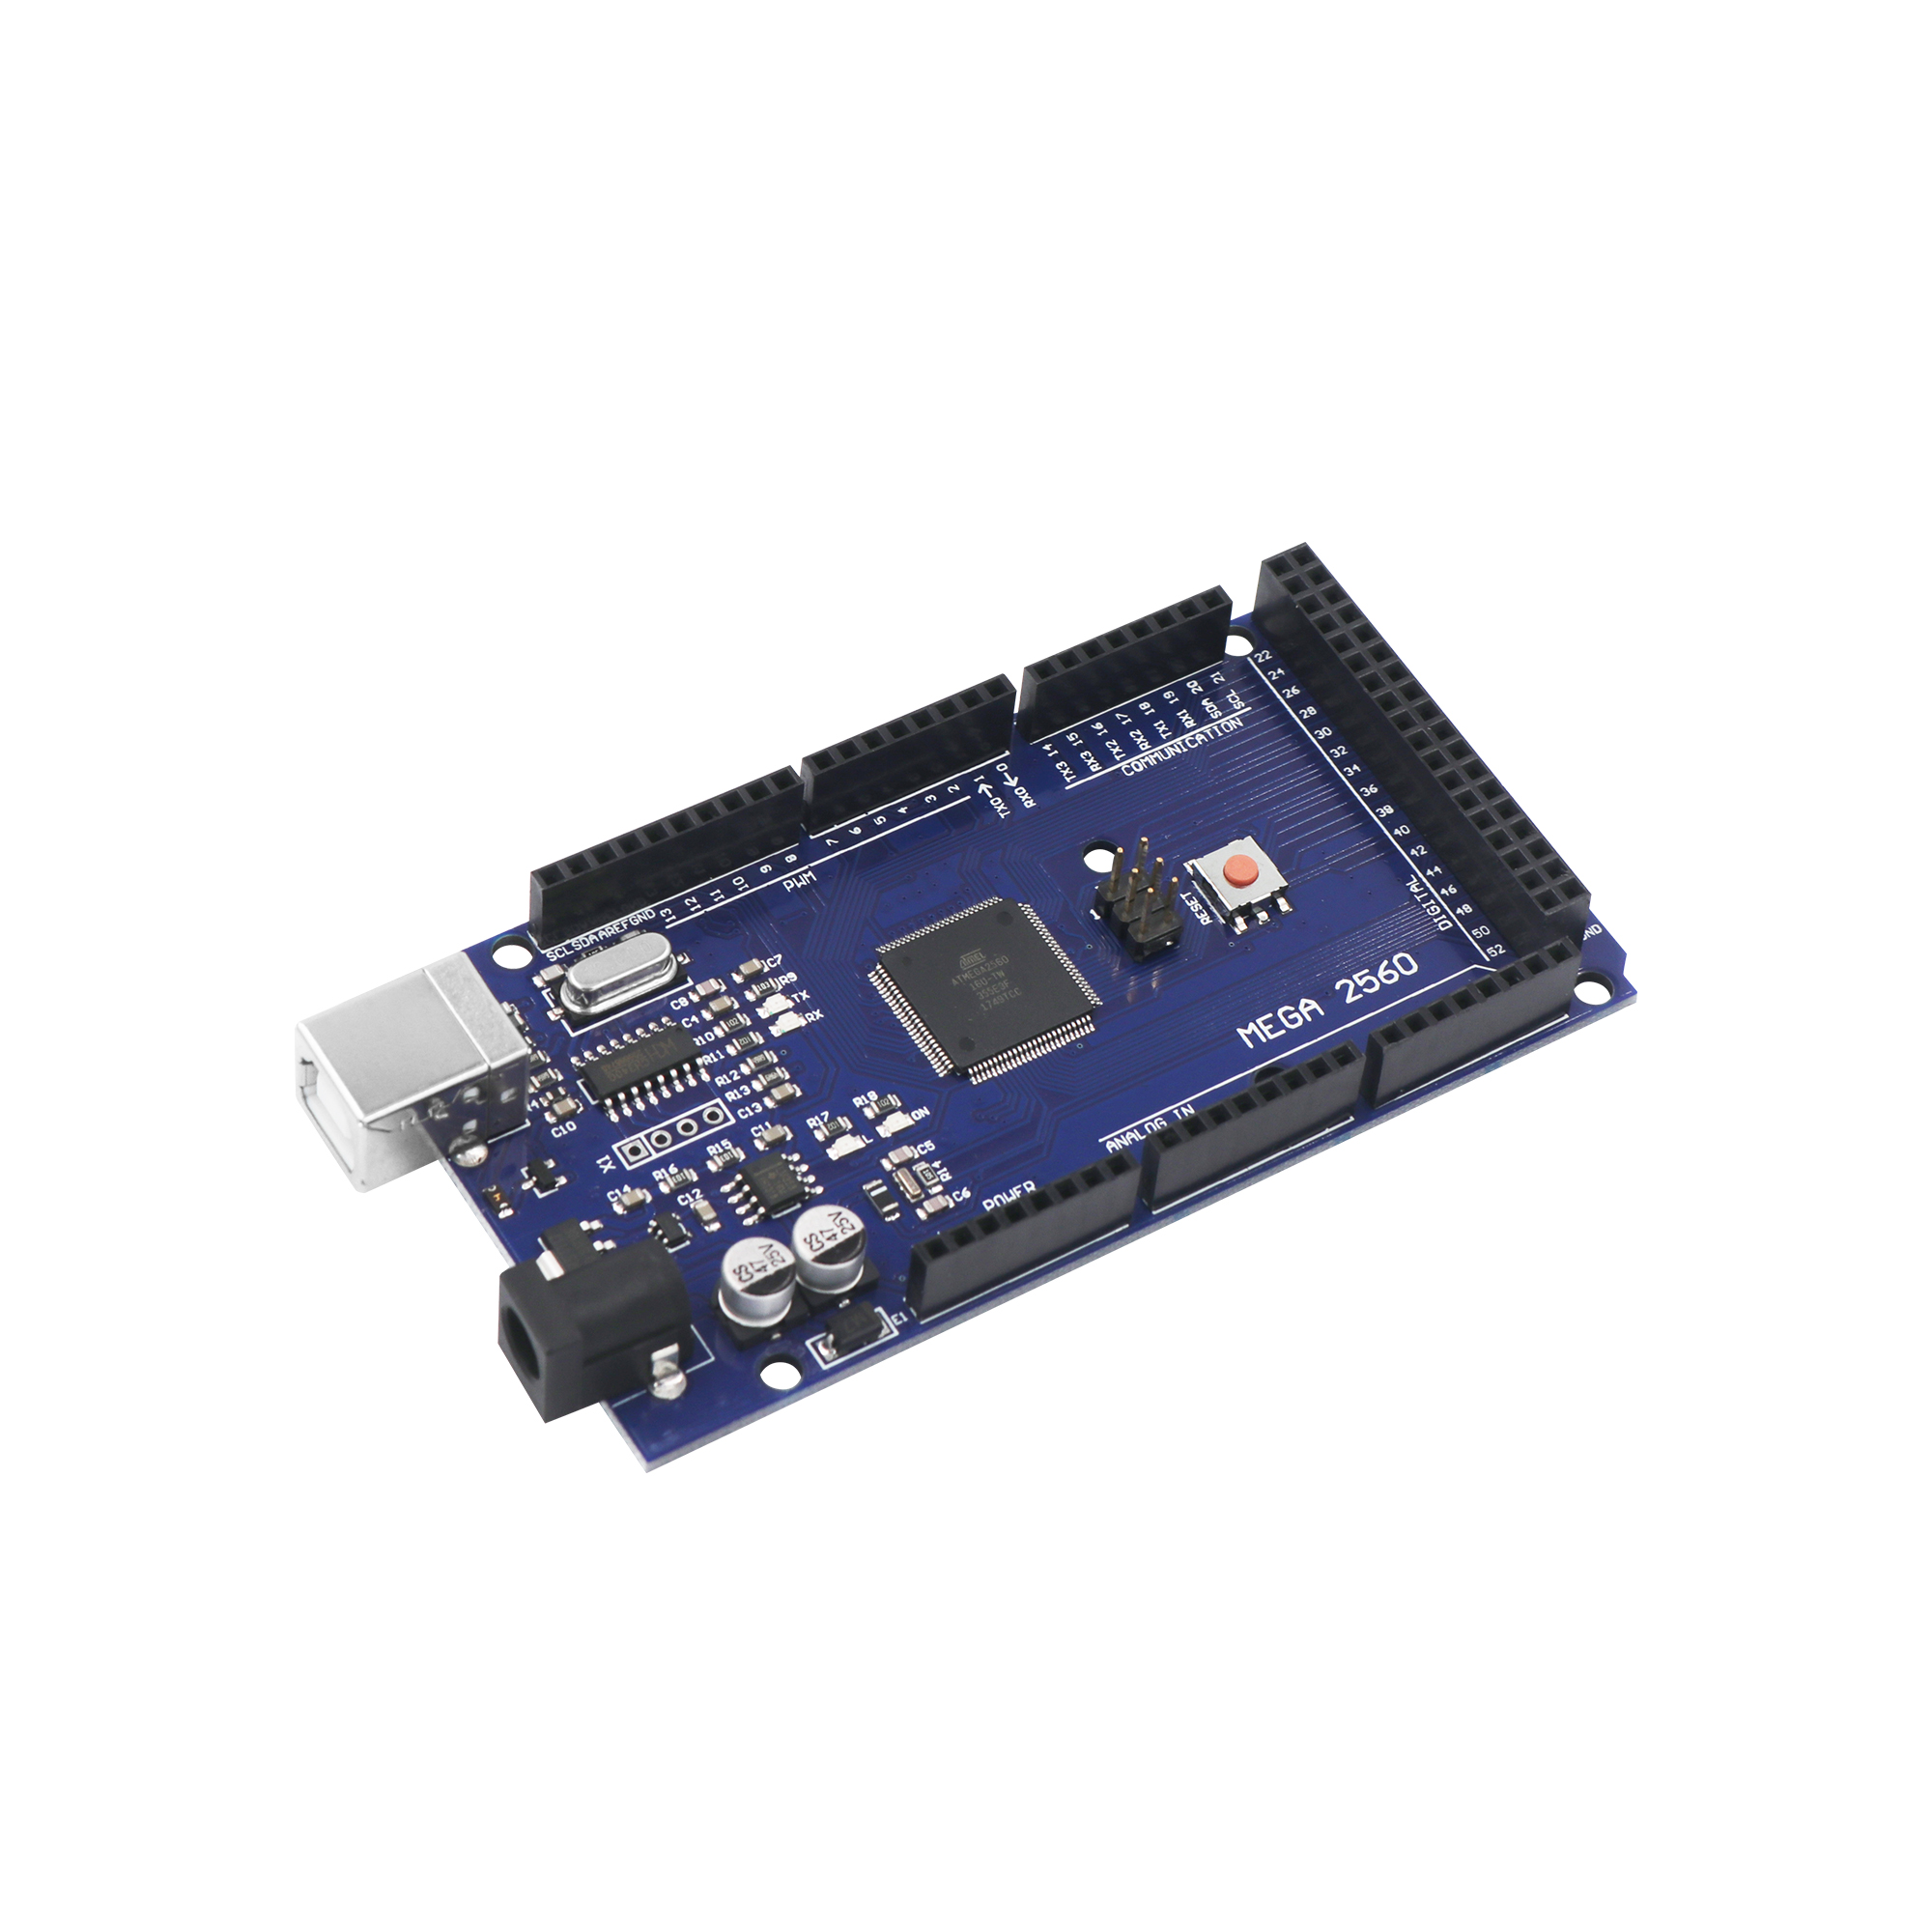 Image 5 - CNC 3D Printer Kit with Mega 2560 Board,RAMPS 1.4,DRV8825,LCD 12864,Heatbed MK2b for Arduino-in Integrated Circuits from Electronic Components & Supplies